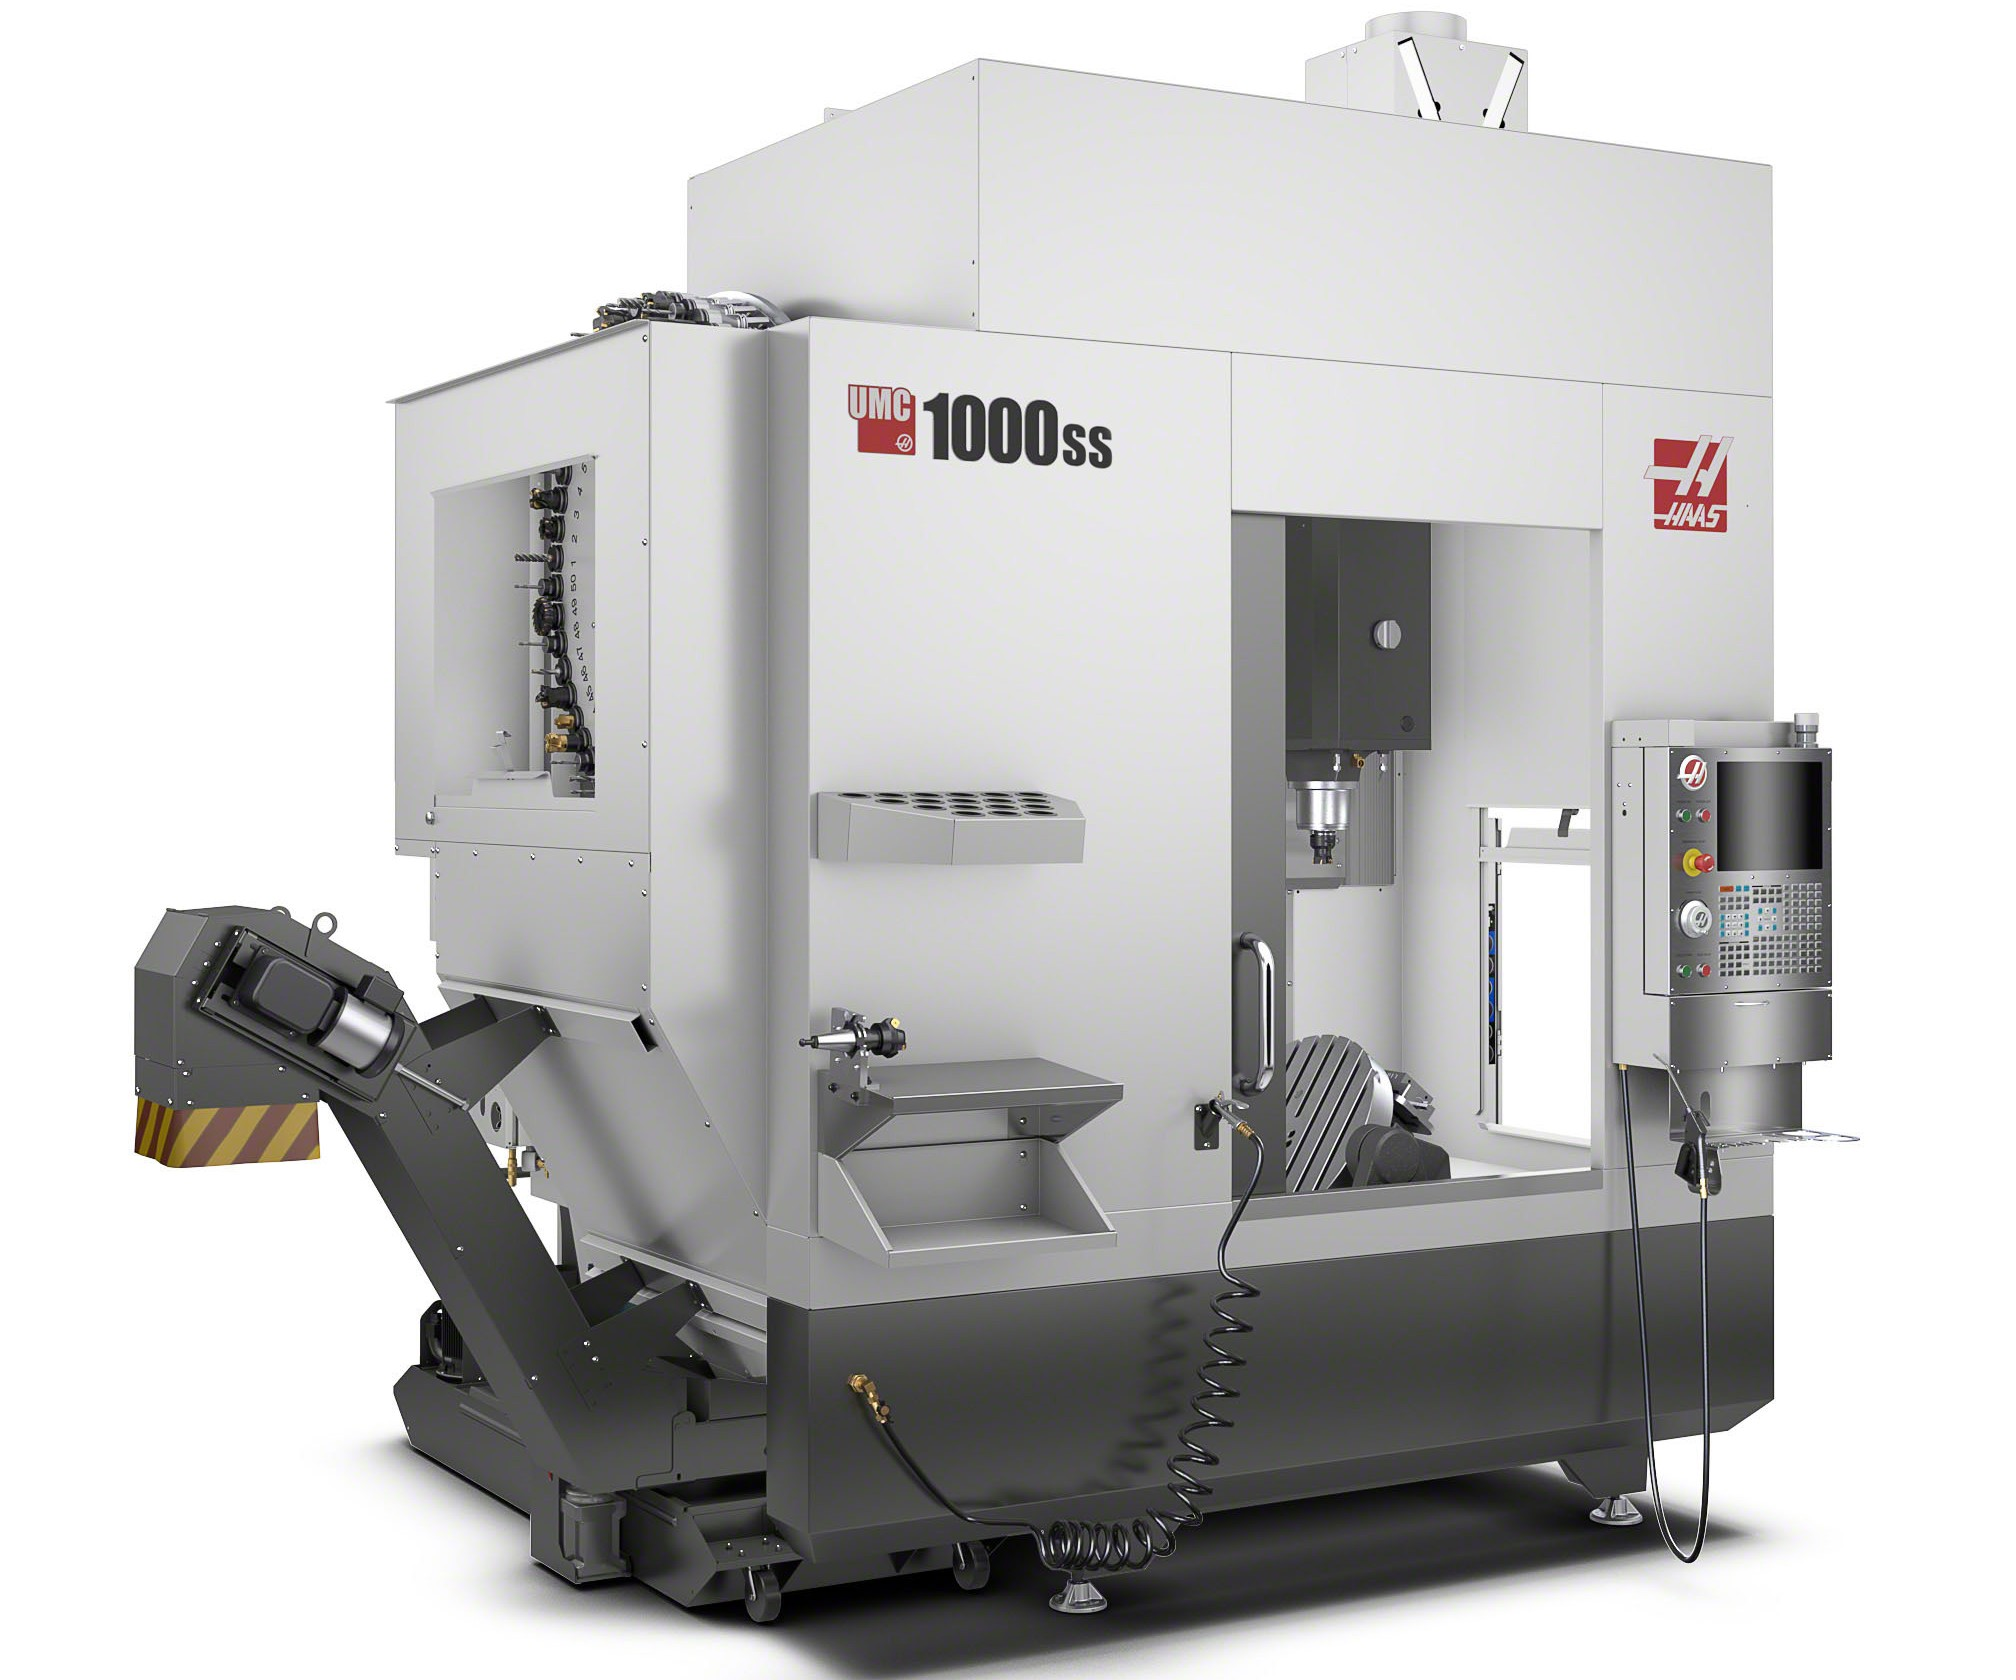 Haas will display its UMC-1000SS UMC at IMTS 2018.